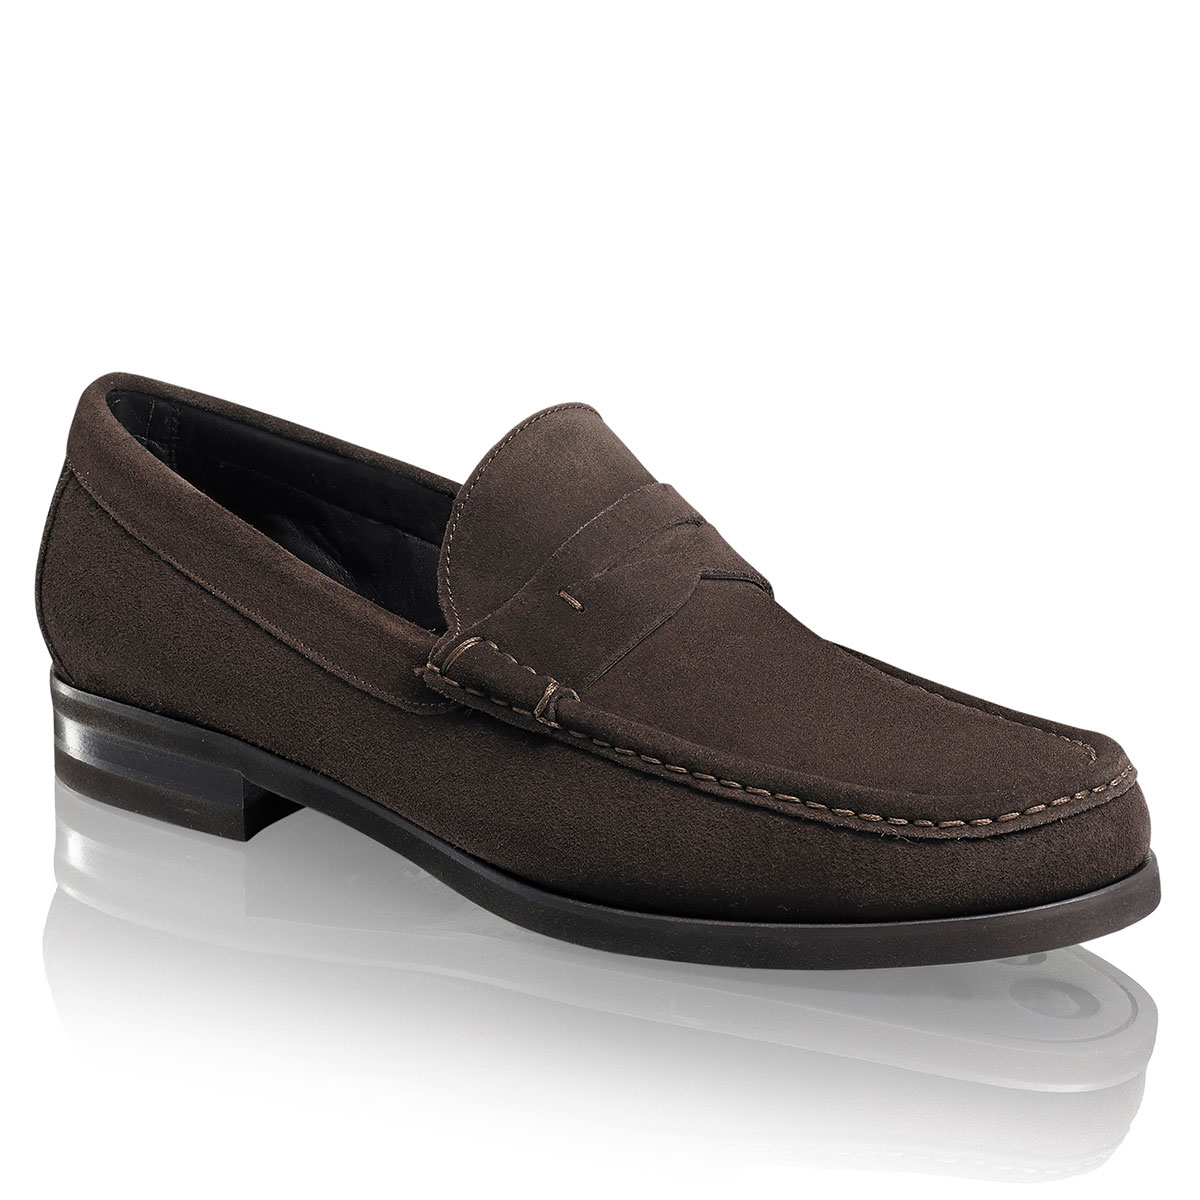 Russell and Bromley SATURN Classic Loafer